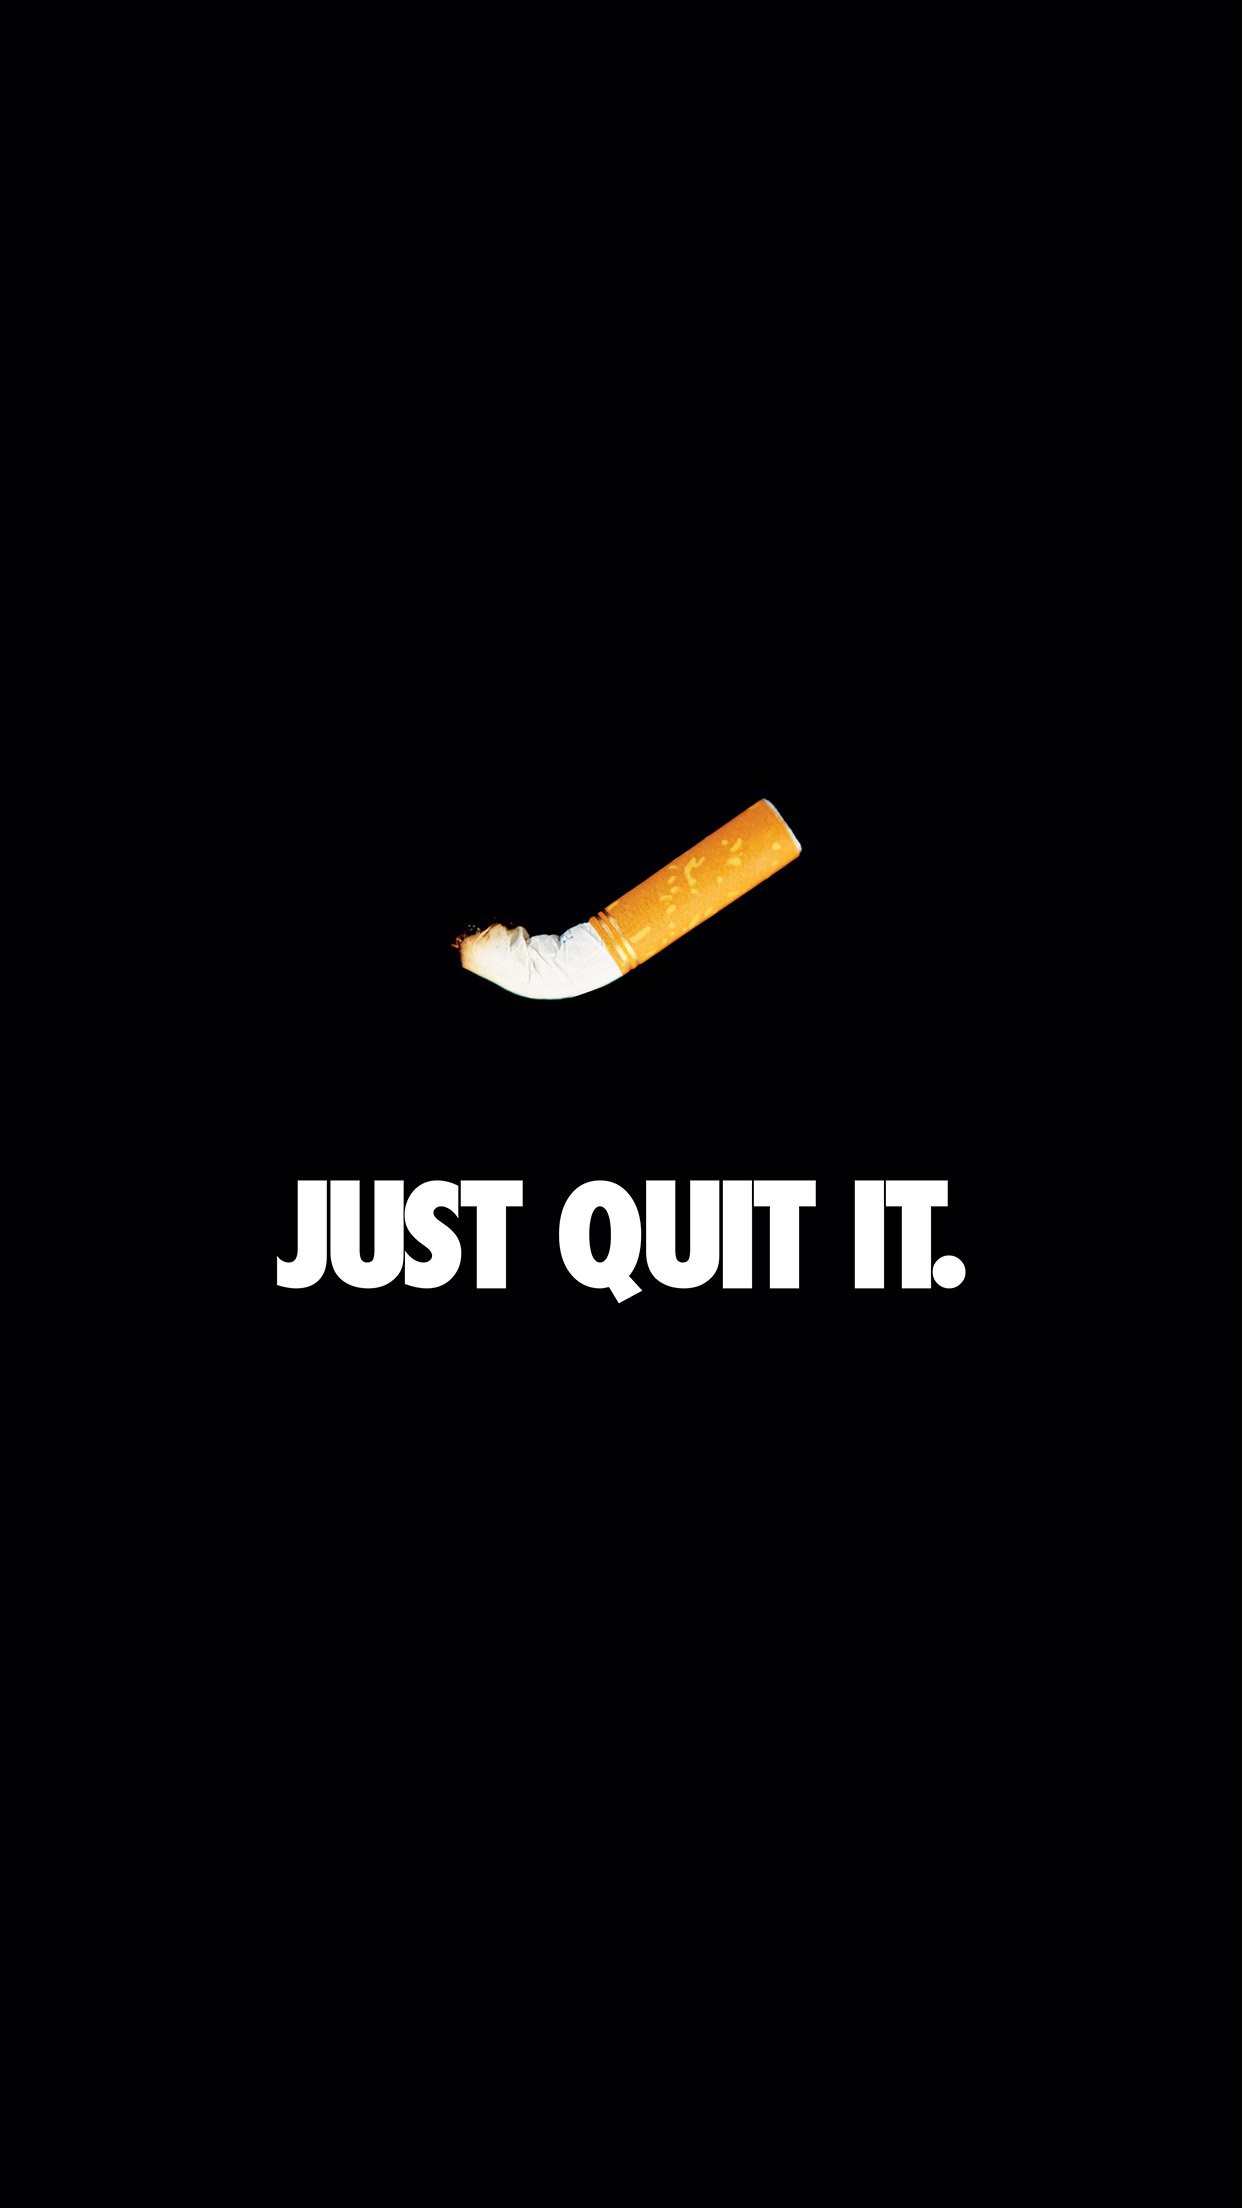 No Smoking Wallpaper 53 images 1242x2208